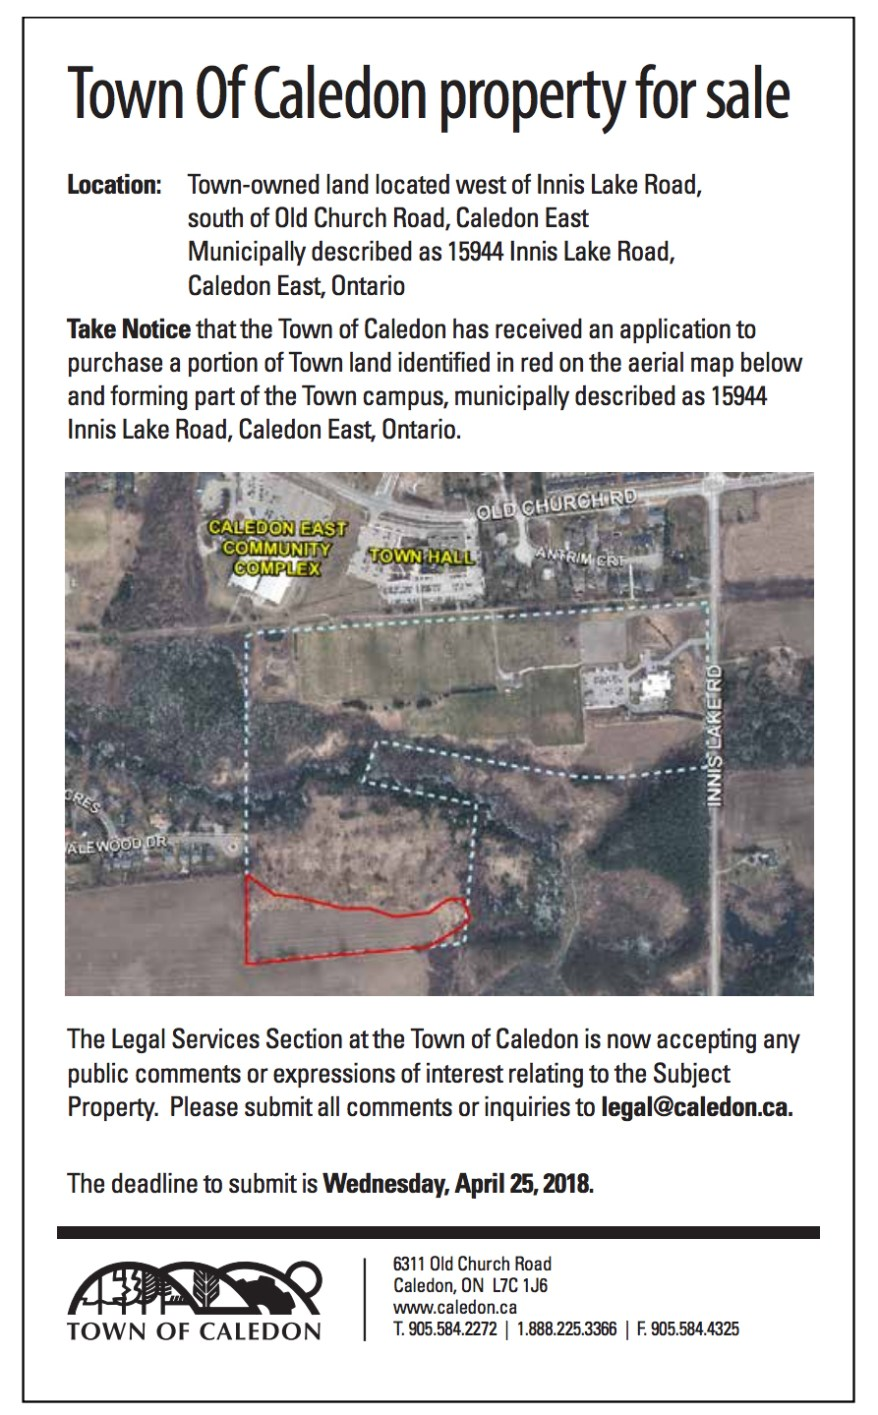 Town of Caledon Property For Sale